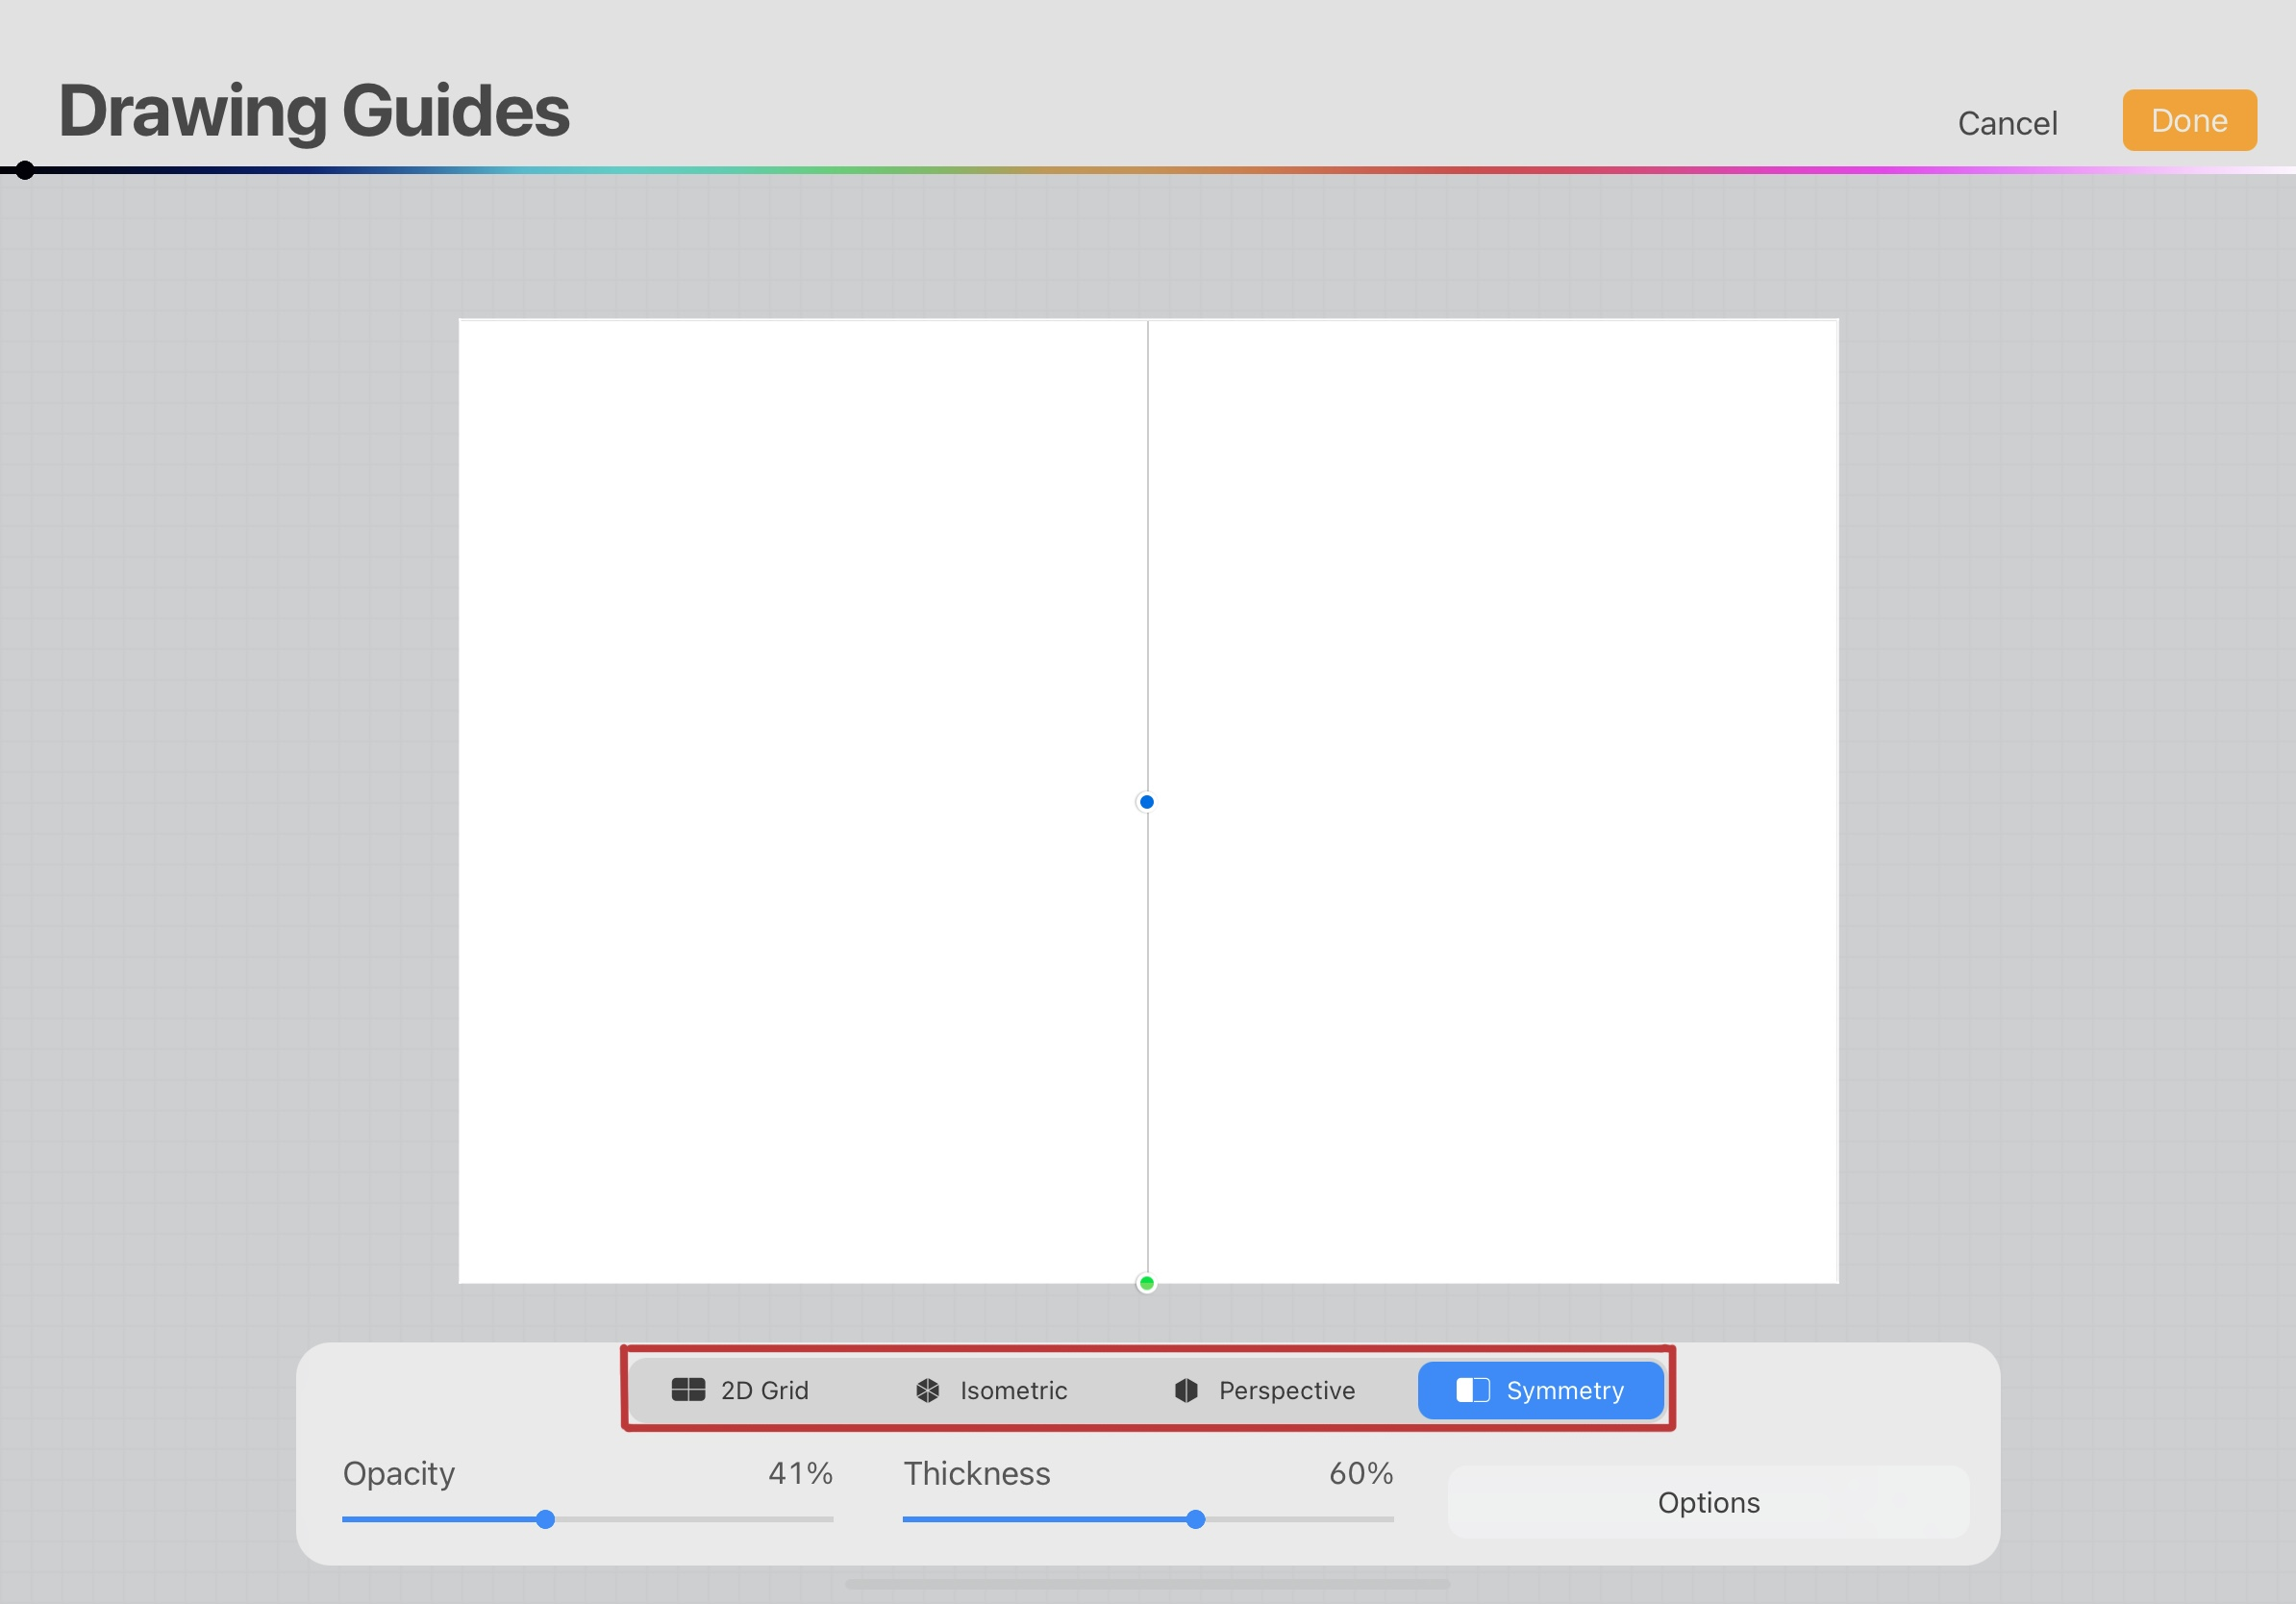 How to adjust the drawing guide settings on Procreate